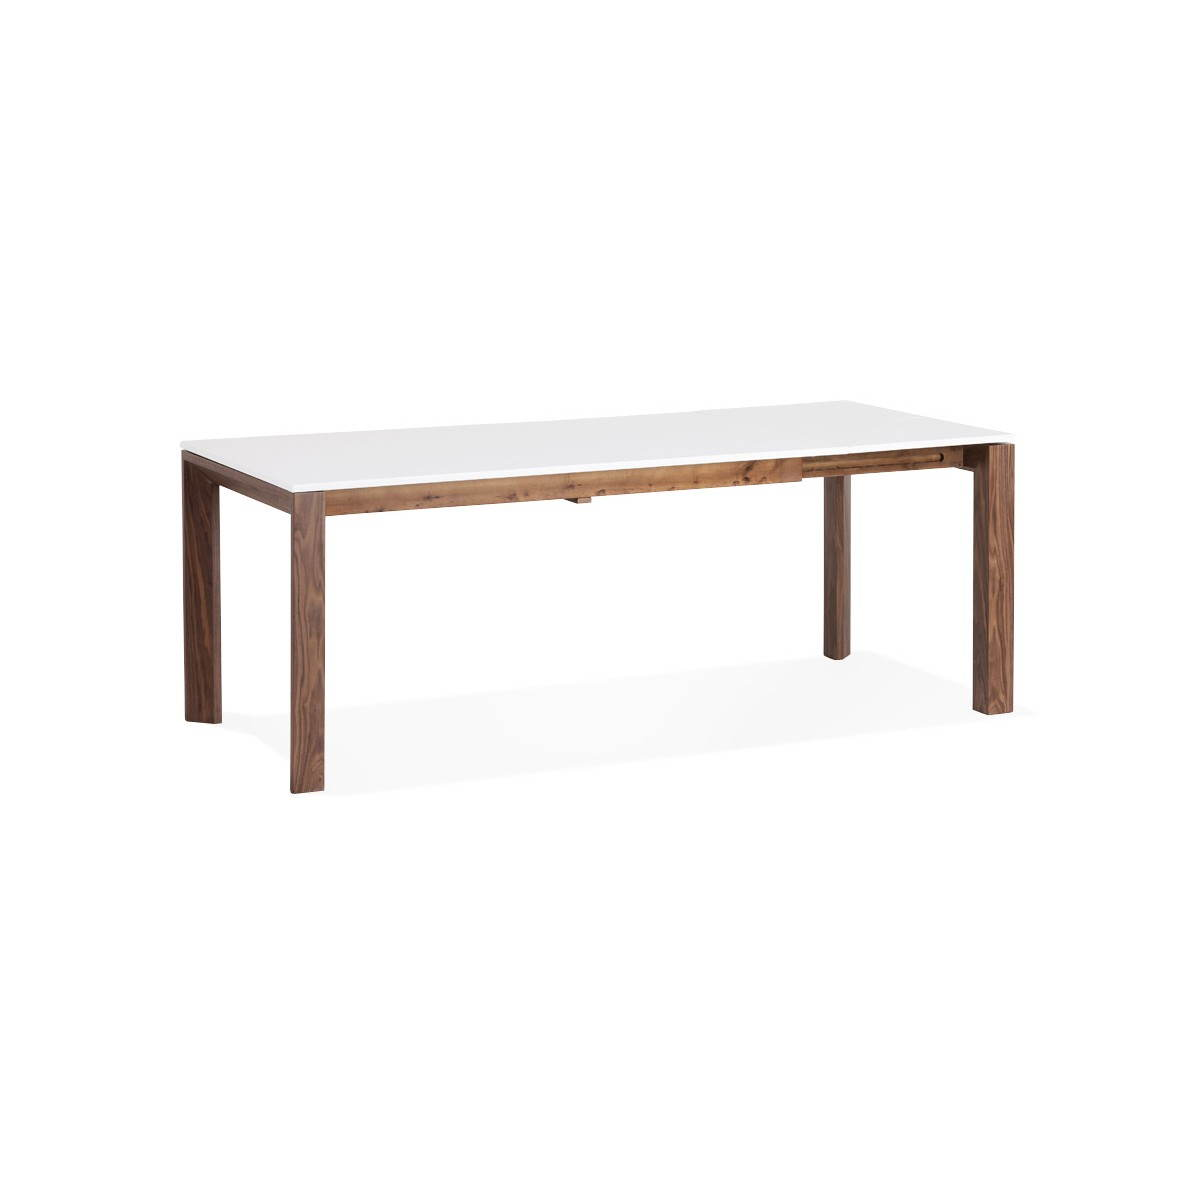 Table design rectangulaire avec rallonge loulou en bois blanc english eng - Table blanc laque avec rallonge ...